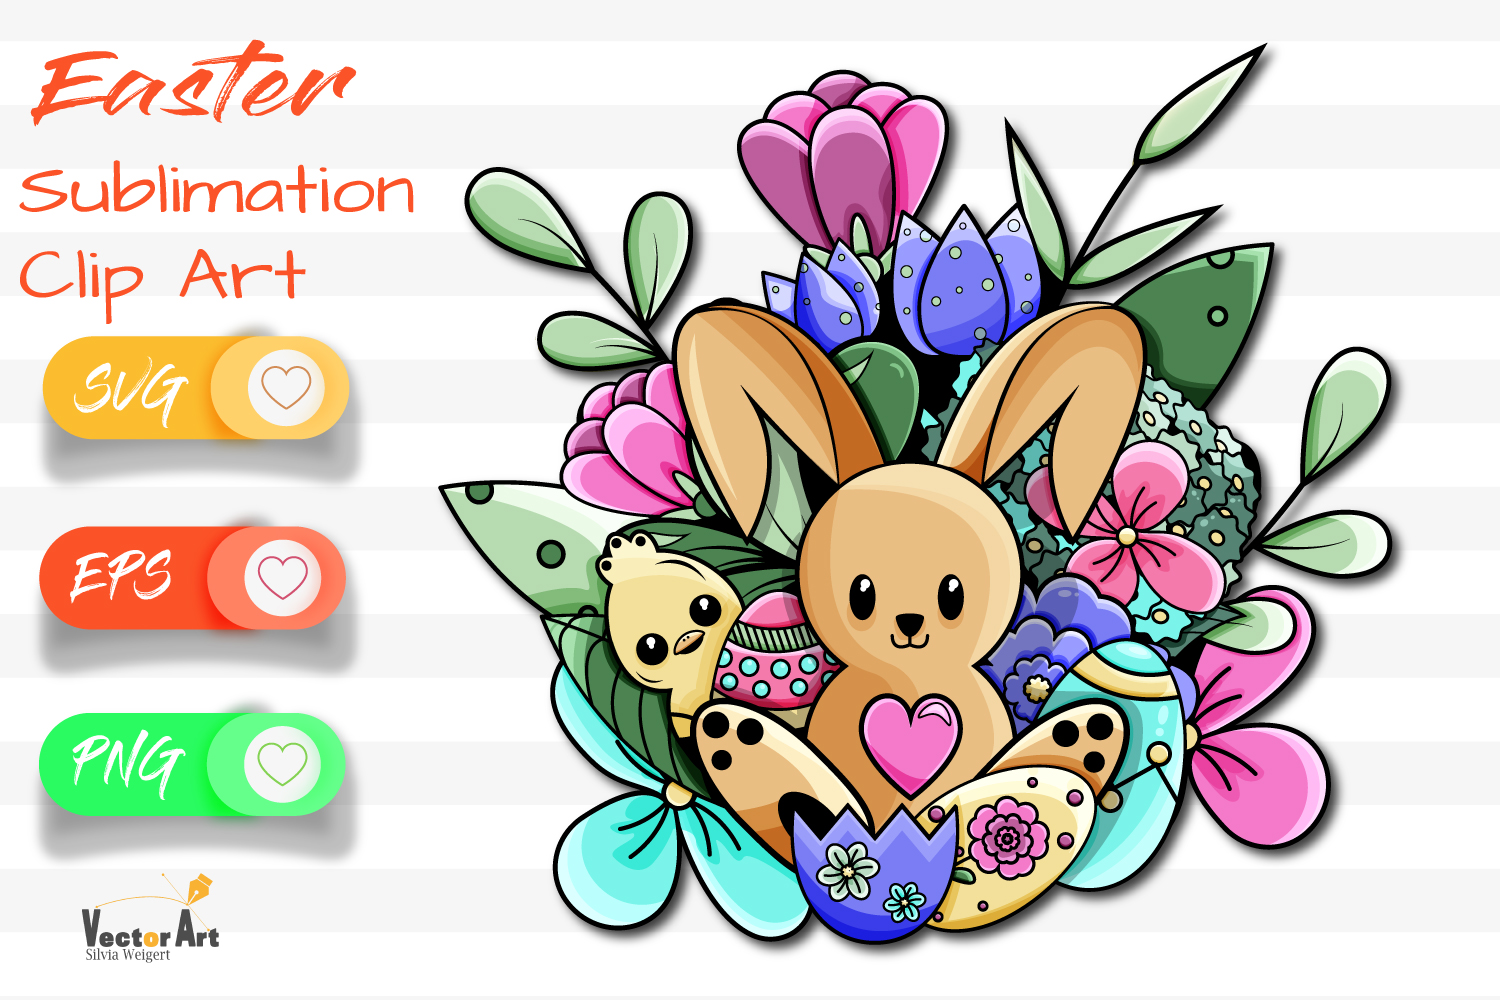 Happy Easter - Sublimation / Clip Art example image 1